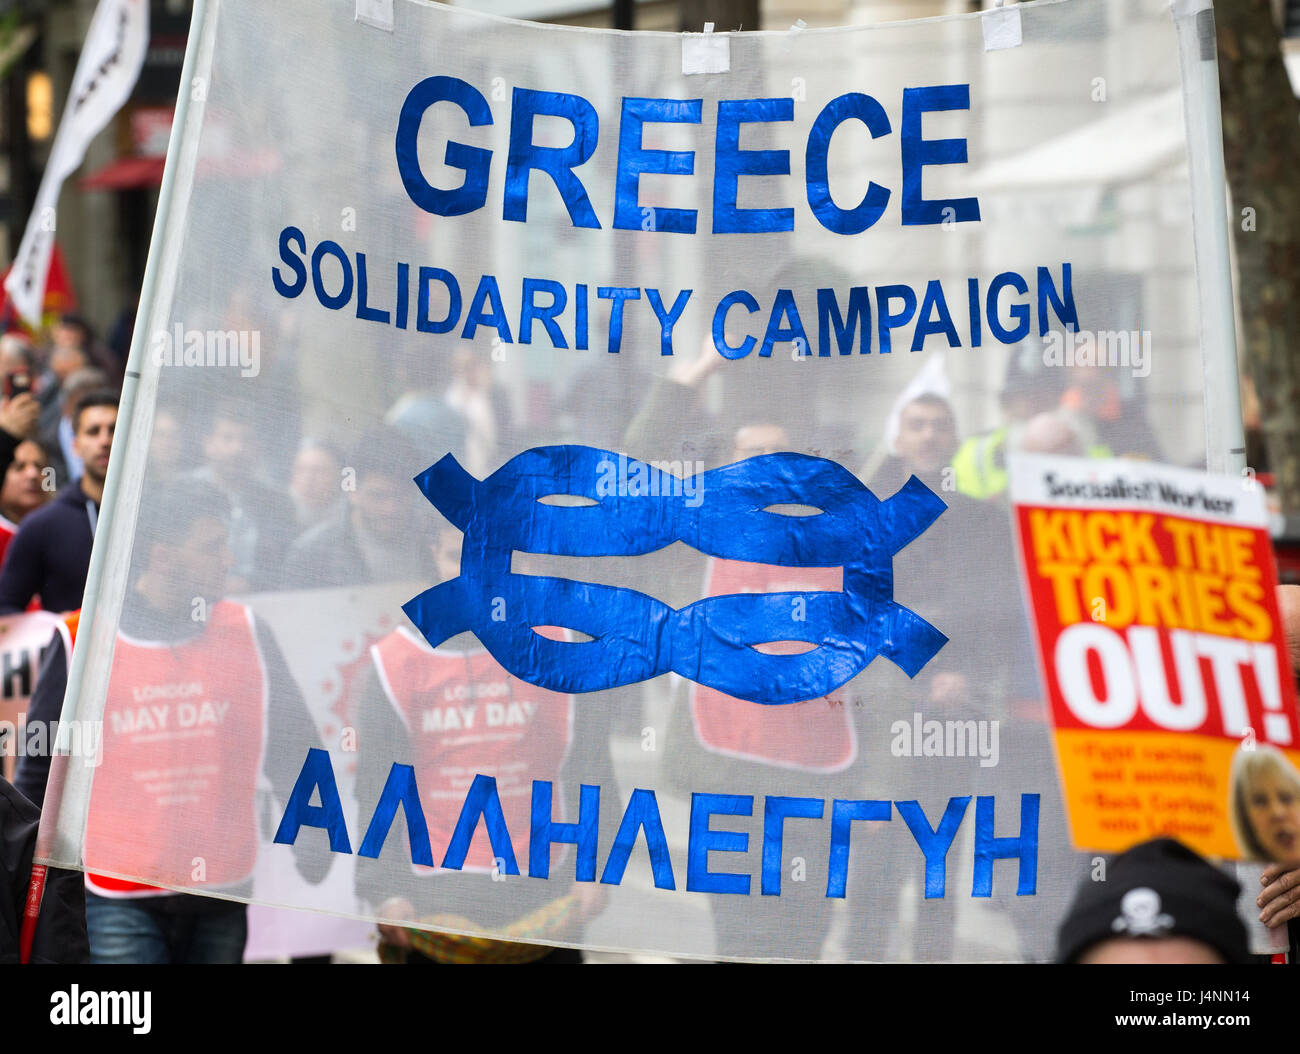 Banner for the 'Greece Solidarity Campaign' at the May 1st march in London - Stock Image